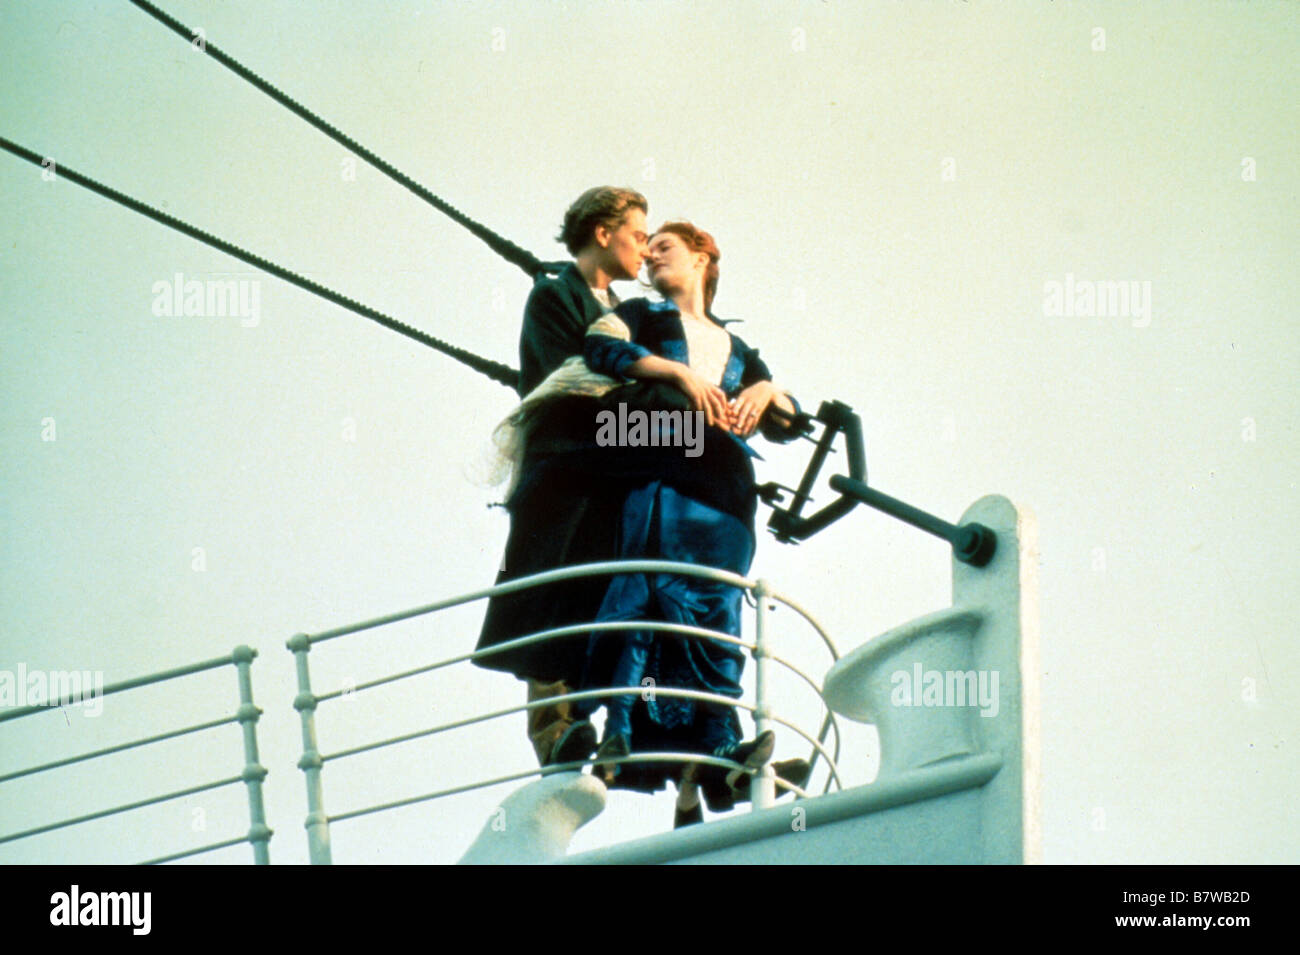 james cameron leonardo dicaprio titanic stock photos